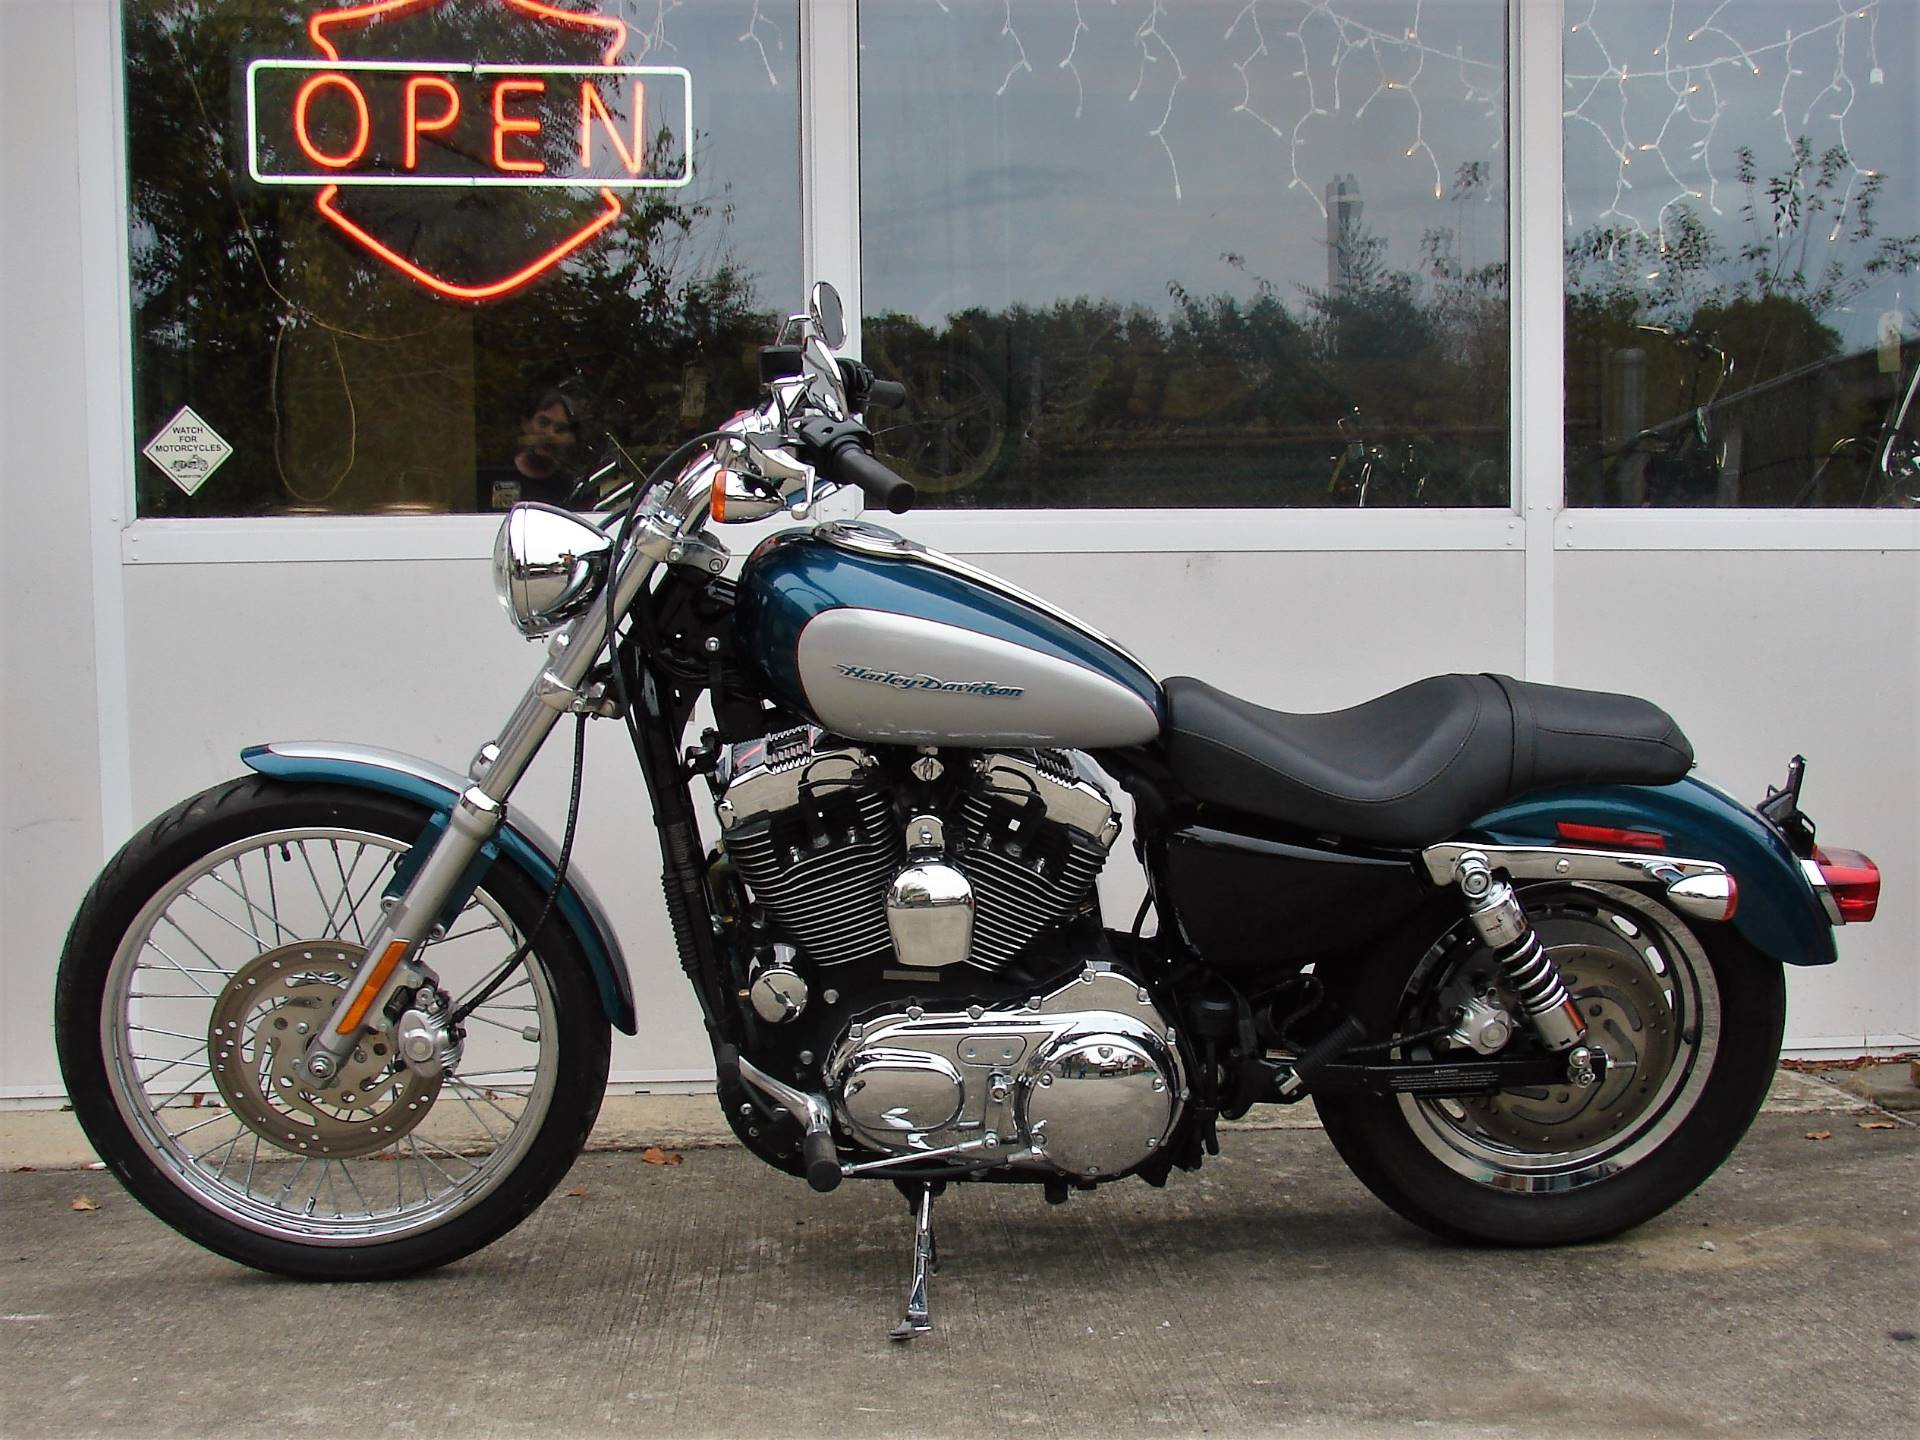 2004 Harley-Davidson Sportster XL 1200 Custom in Williamstown, New Jersey - Photo 6